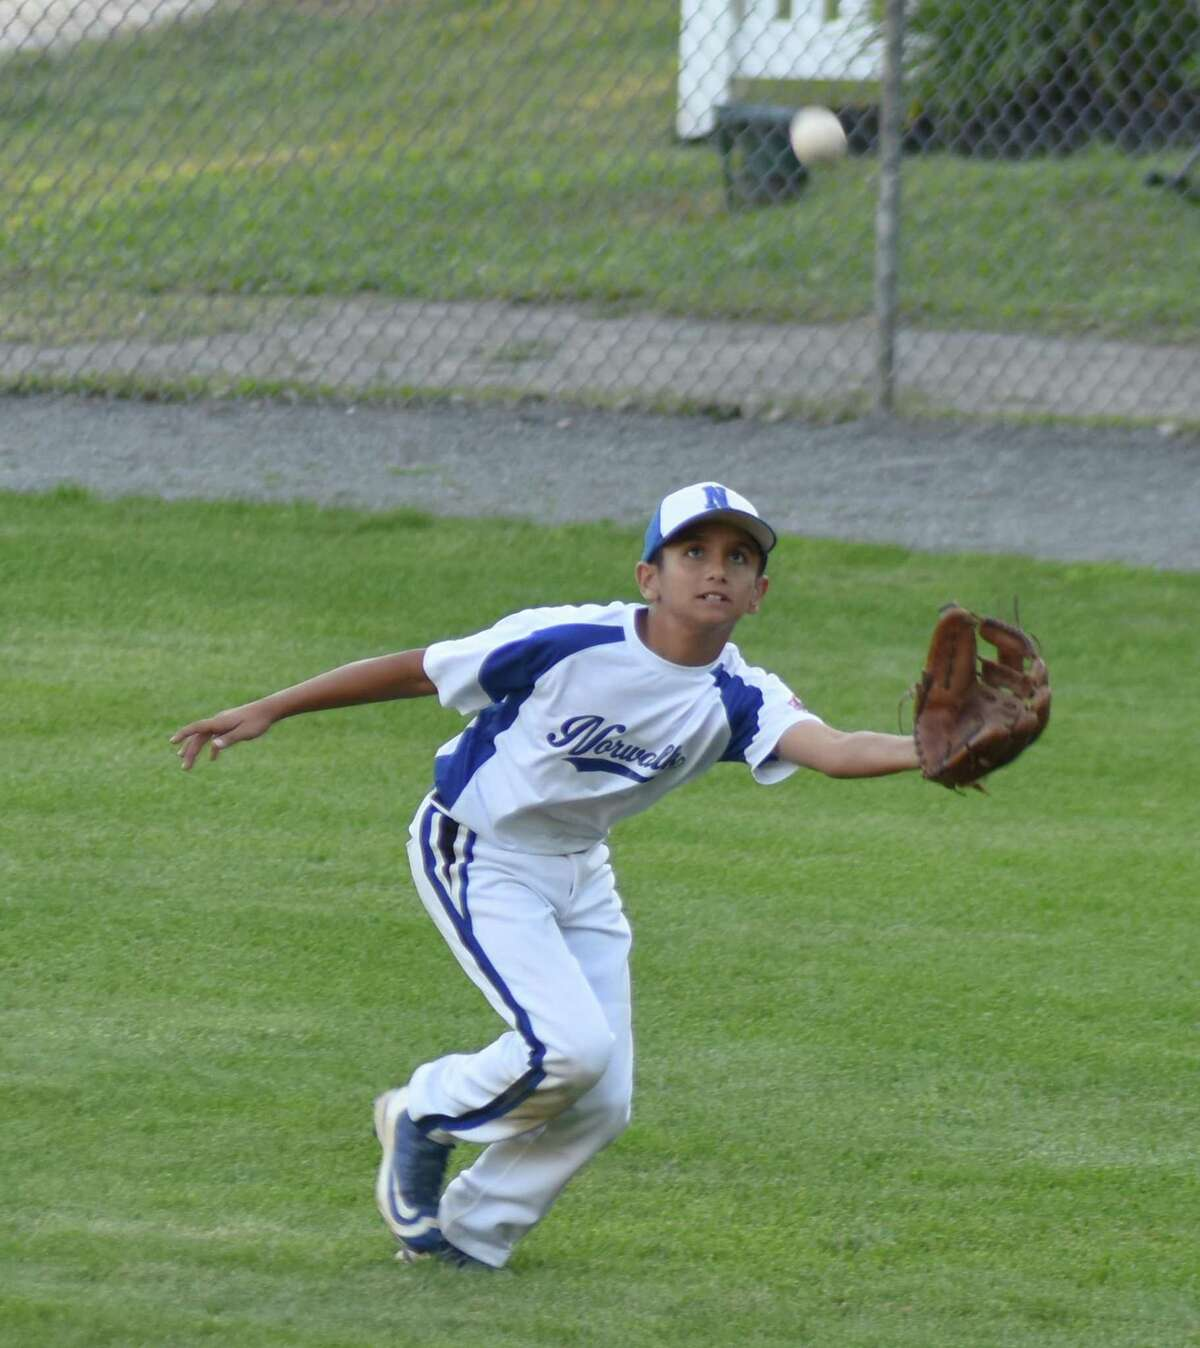 Norwalk's Taso Panagiotidis tracks down a fly ball in right field during Sunday's Cal Ripken Baseball 11-year-old New England Tournament game against Hudson, Mass., at Beckwith Park in Dover, N.H. Norwalk won the game 12-2.